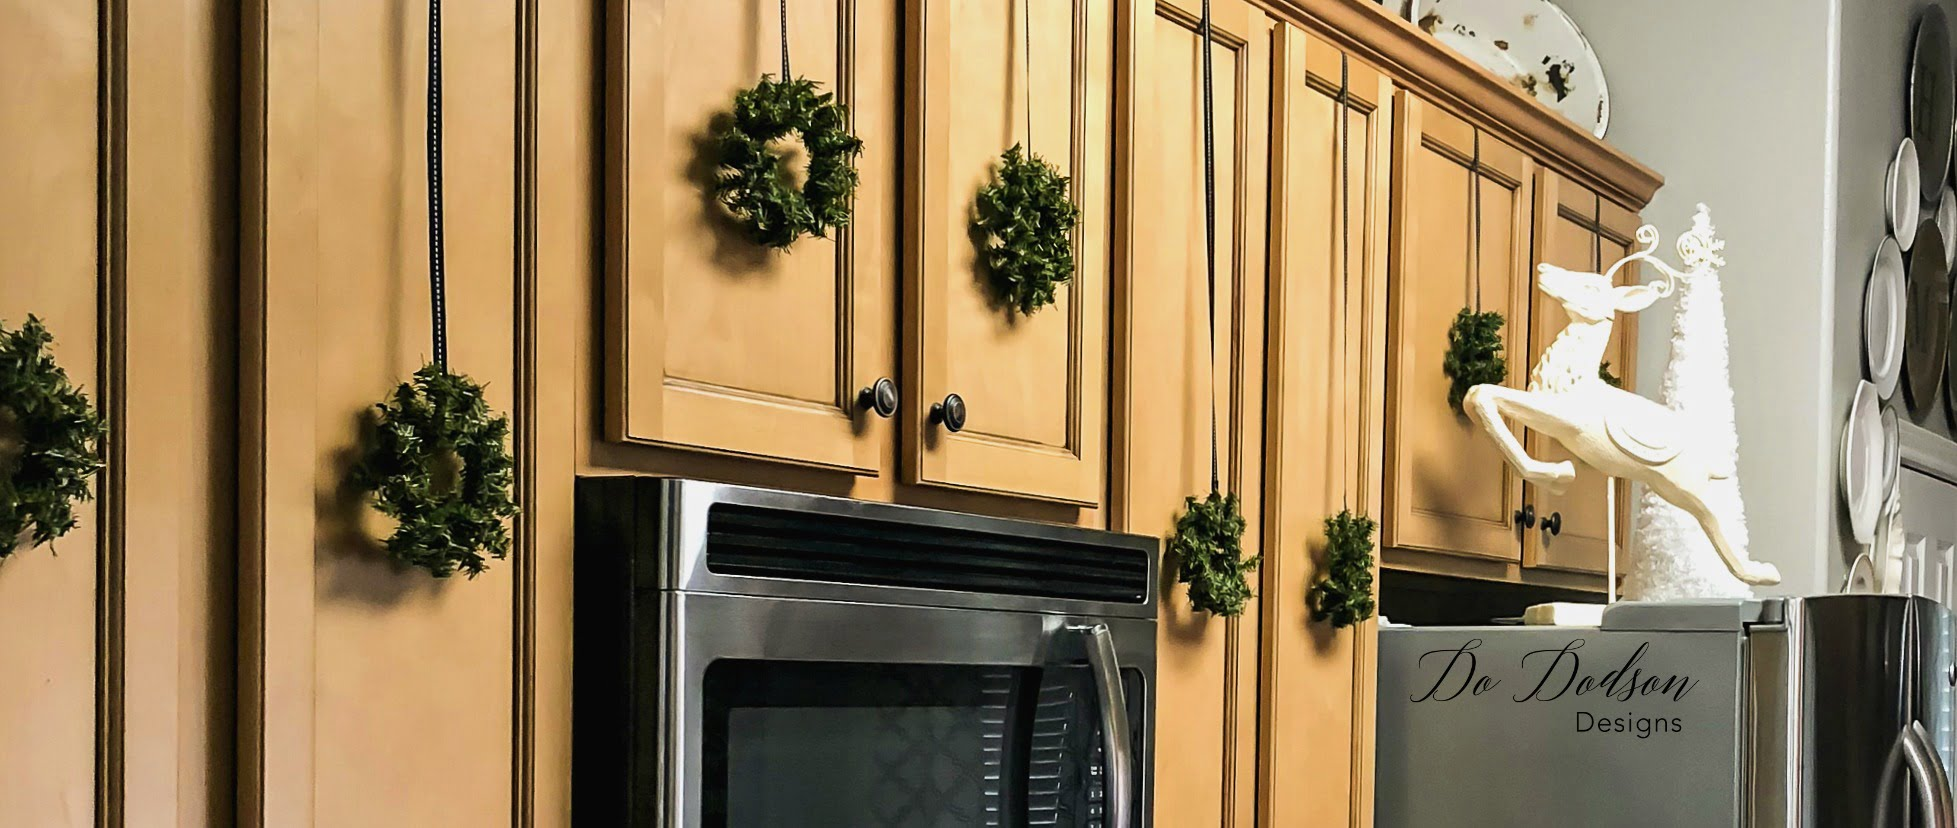 Mini Wreaths for holiday kitchen cabinets.